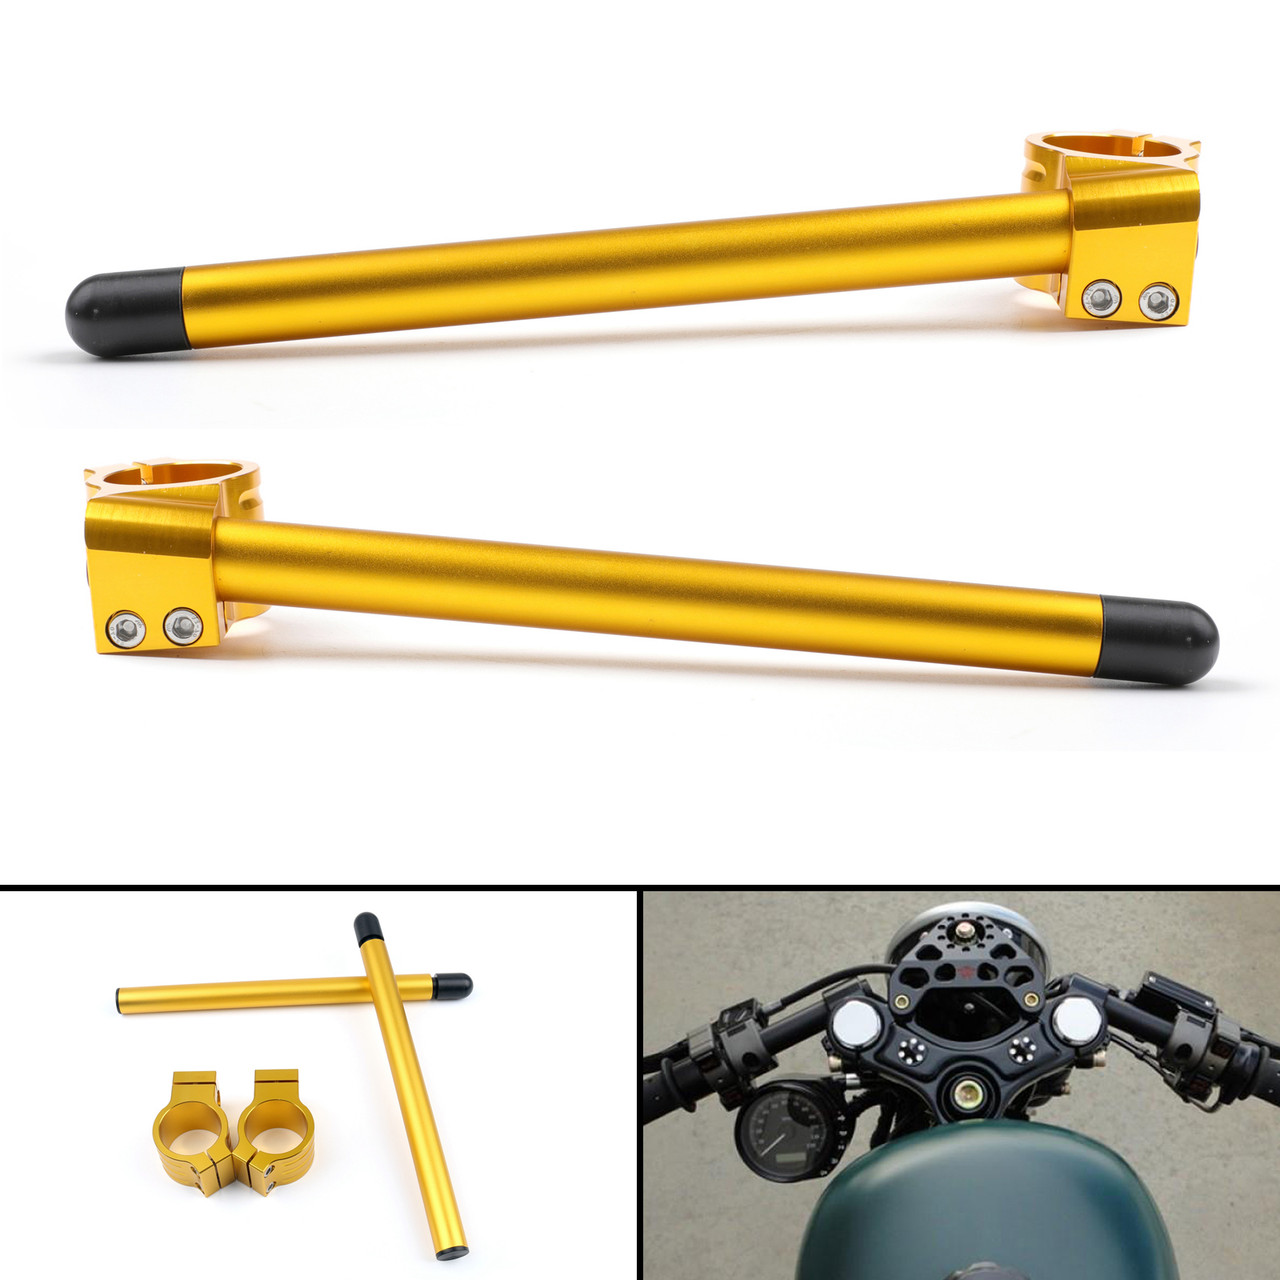 41mm Clip-On Handlebars Universal Motoycycle CBR VTR GSX GSXR SV ZX Mille R6 R1, Gold